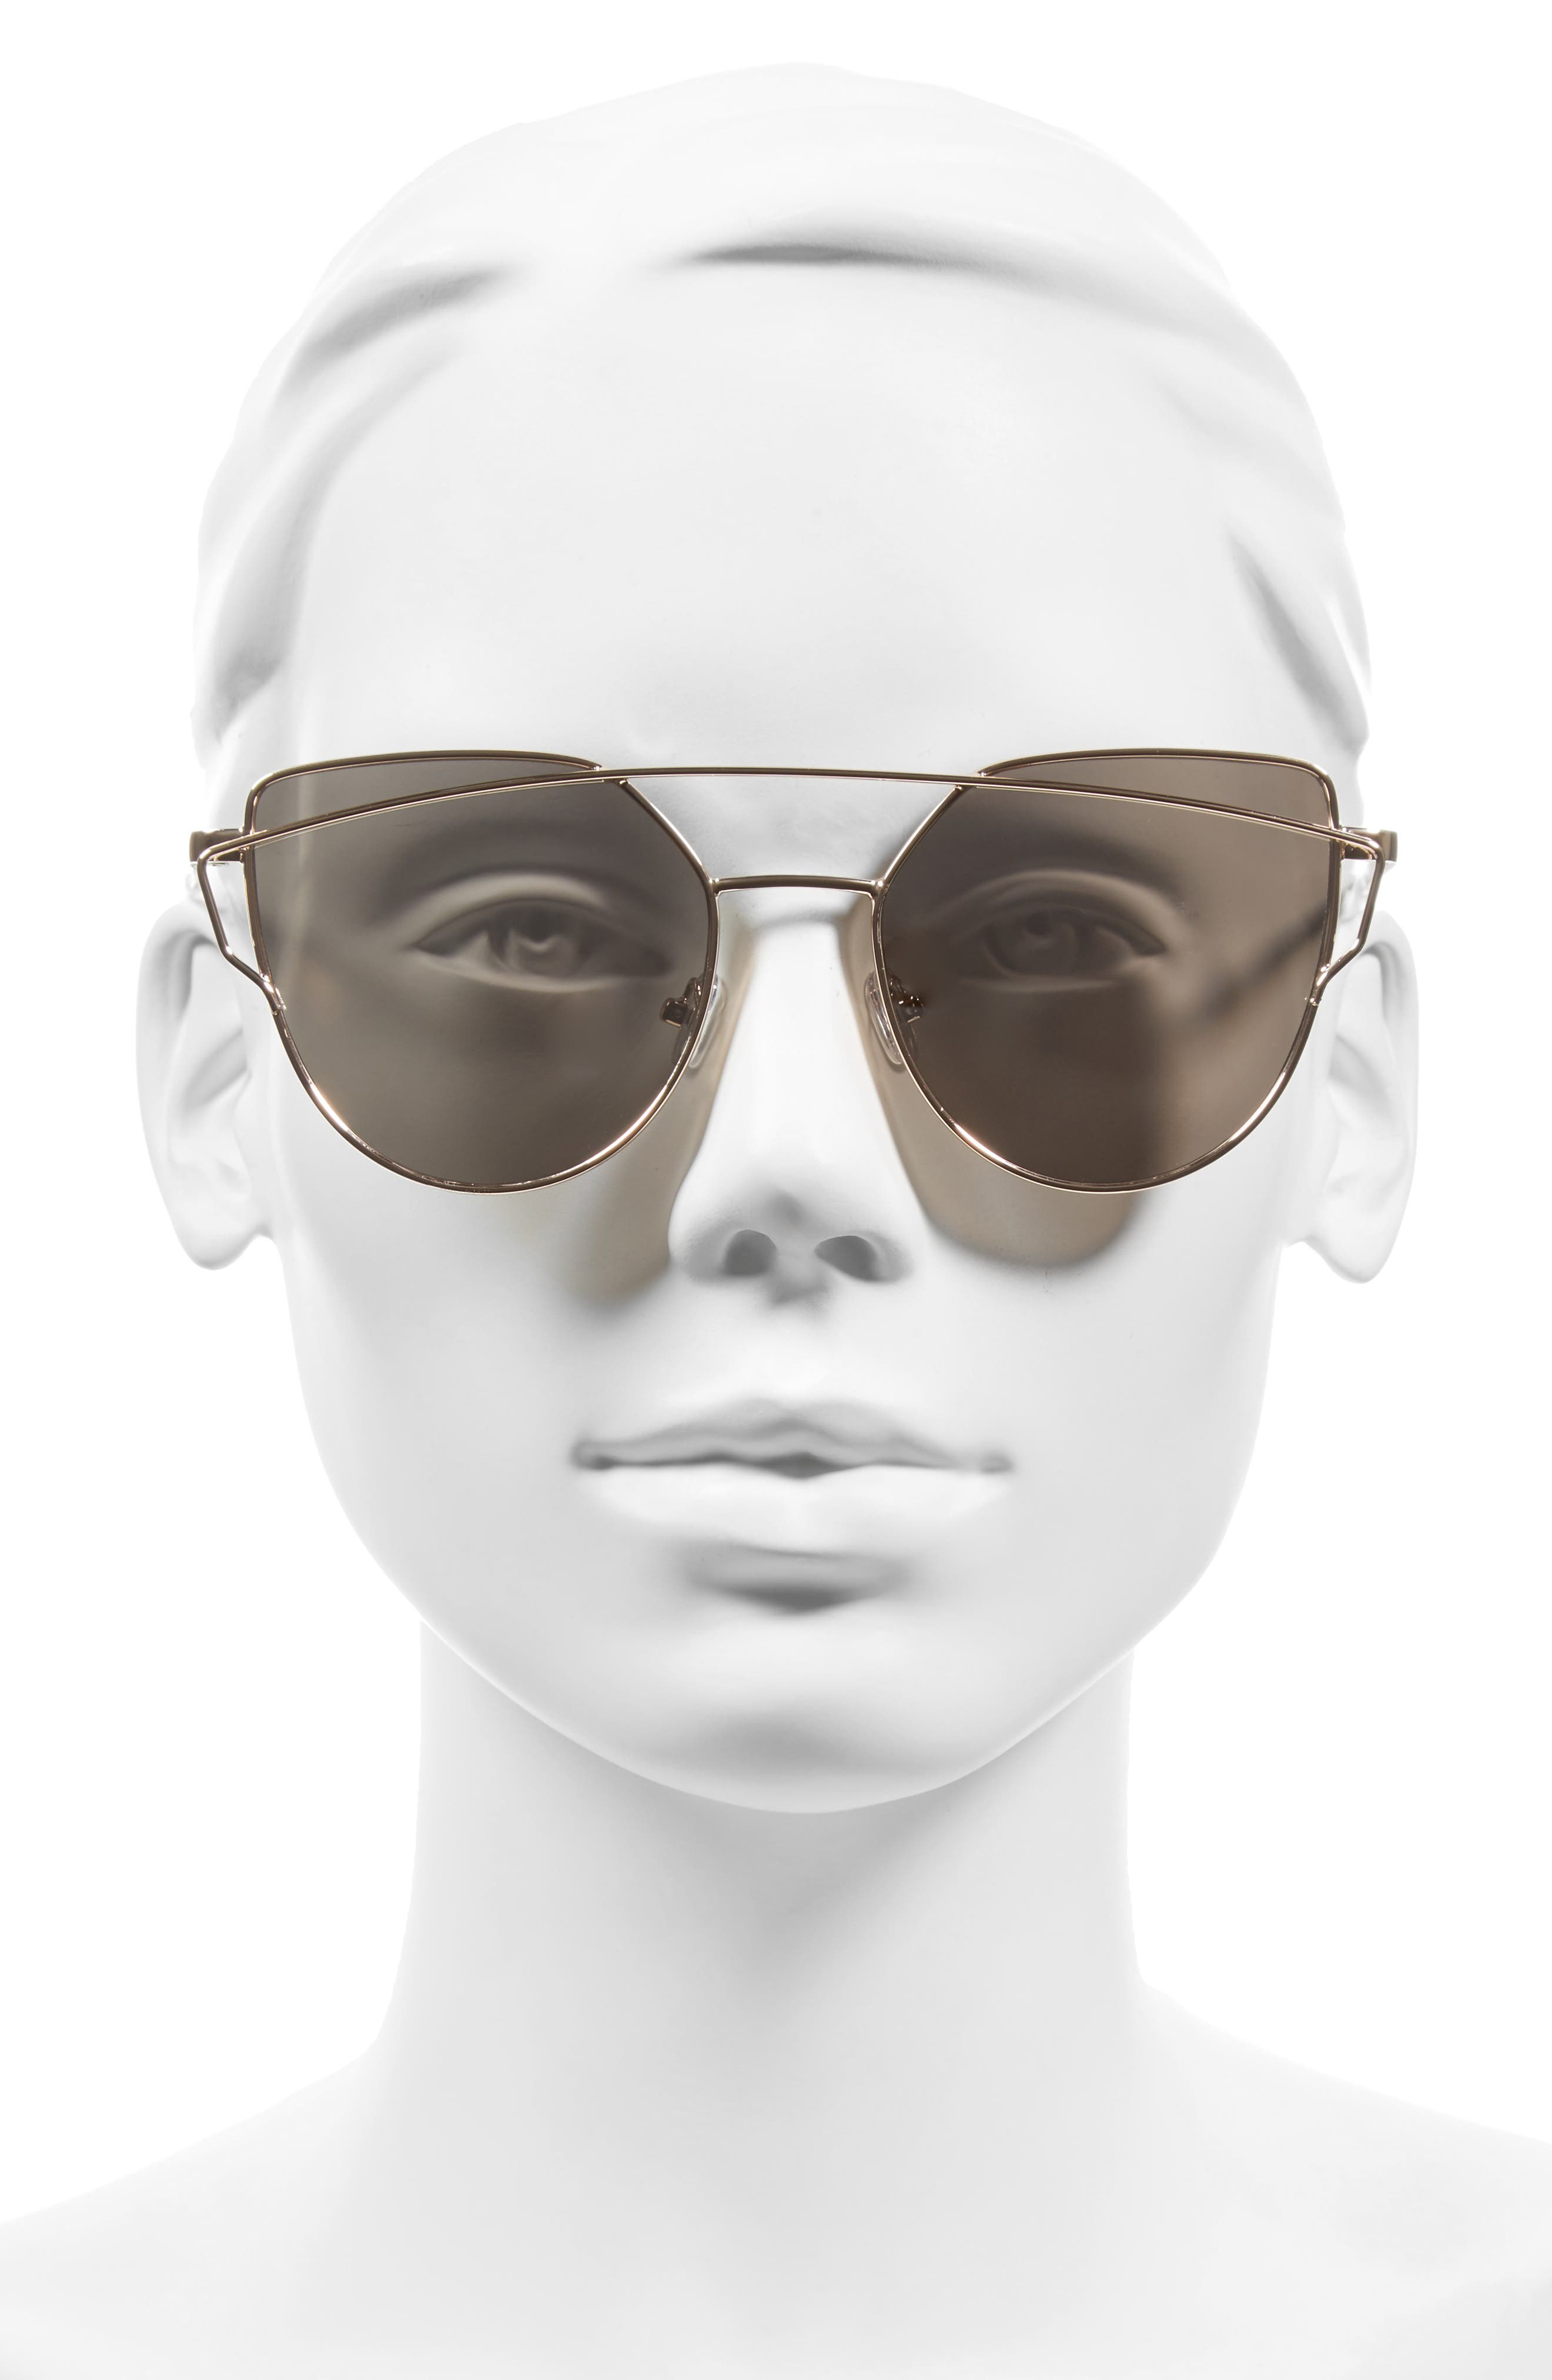 51mm Thin Brow Angular Aviator Sunglasses,                             Alternate thumbnail 20, color,